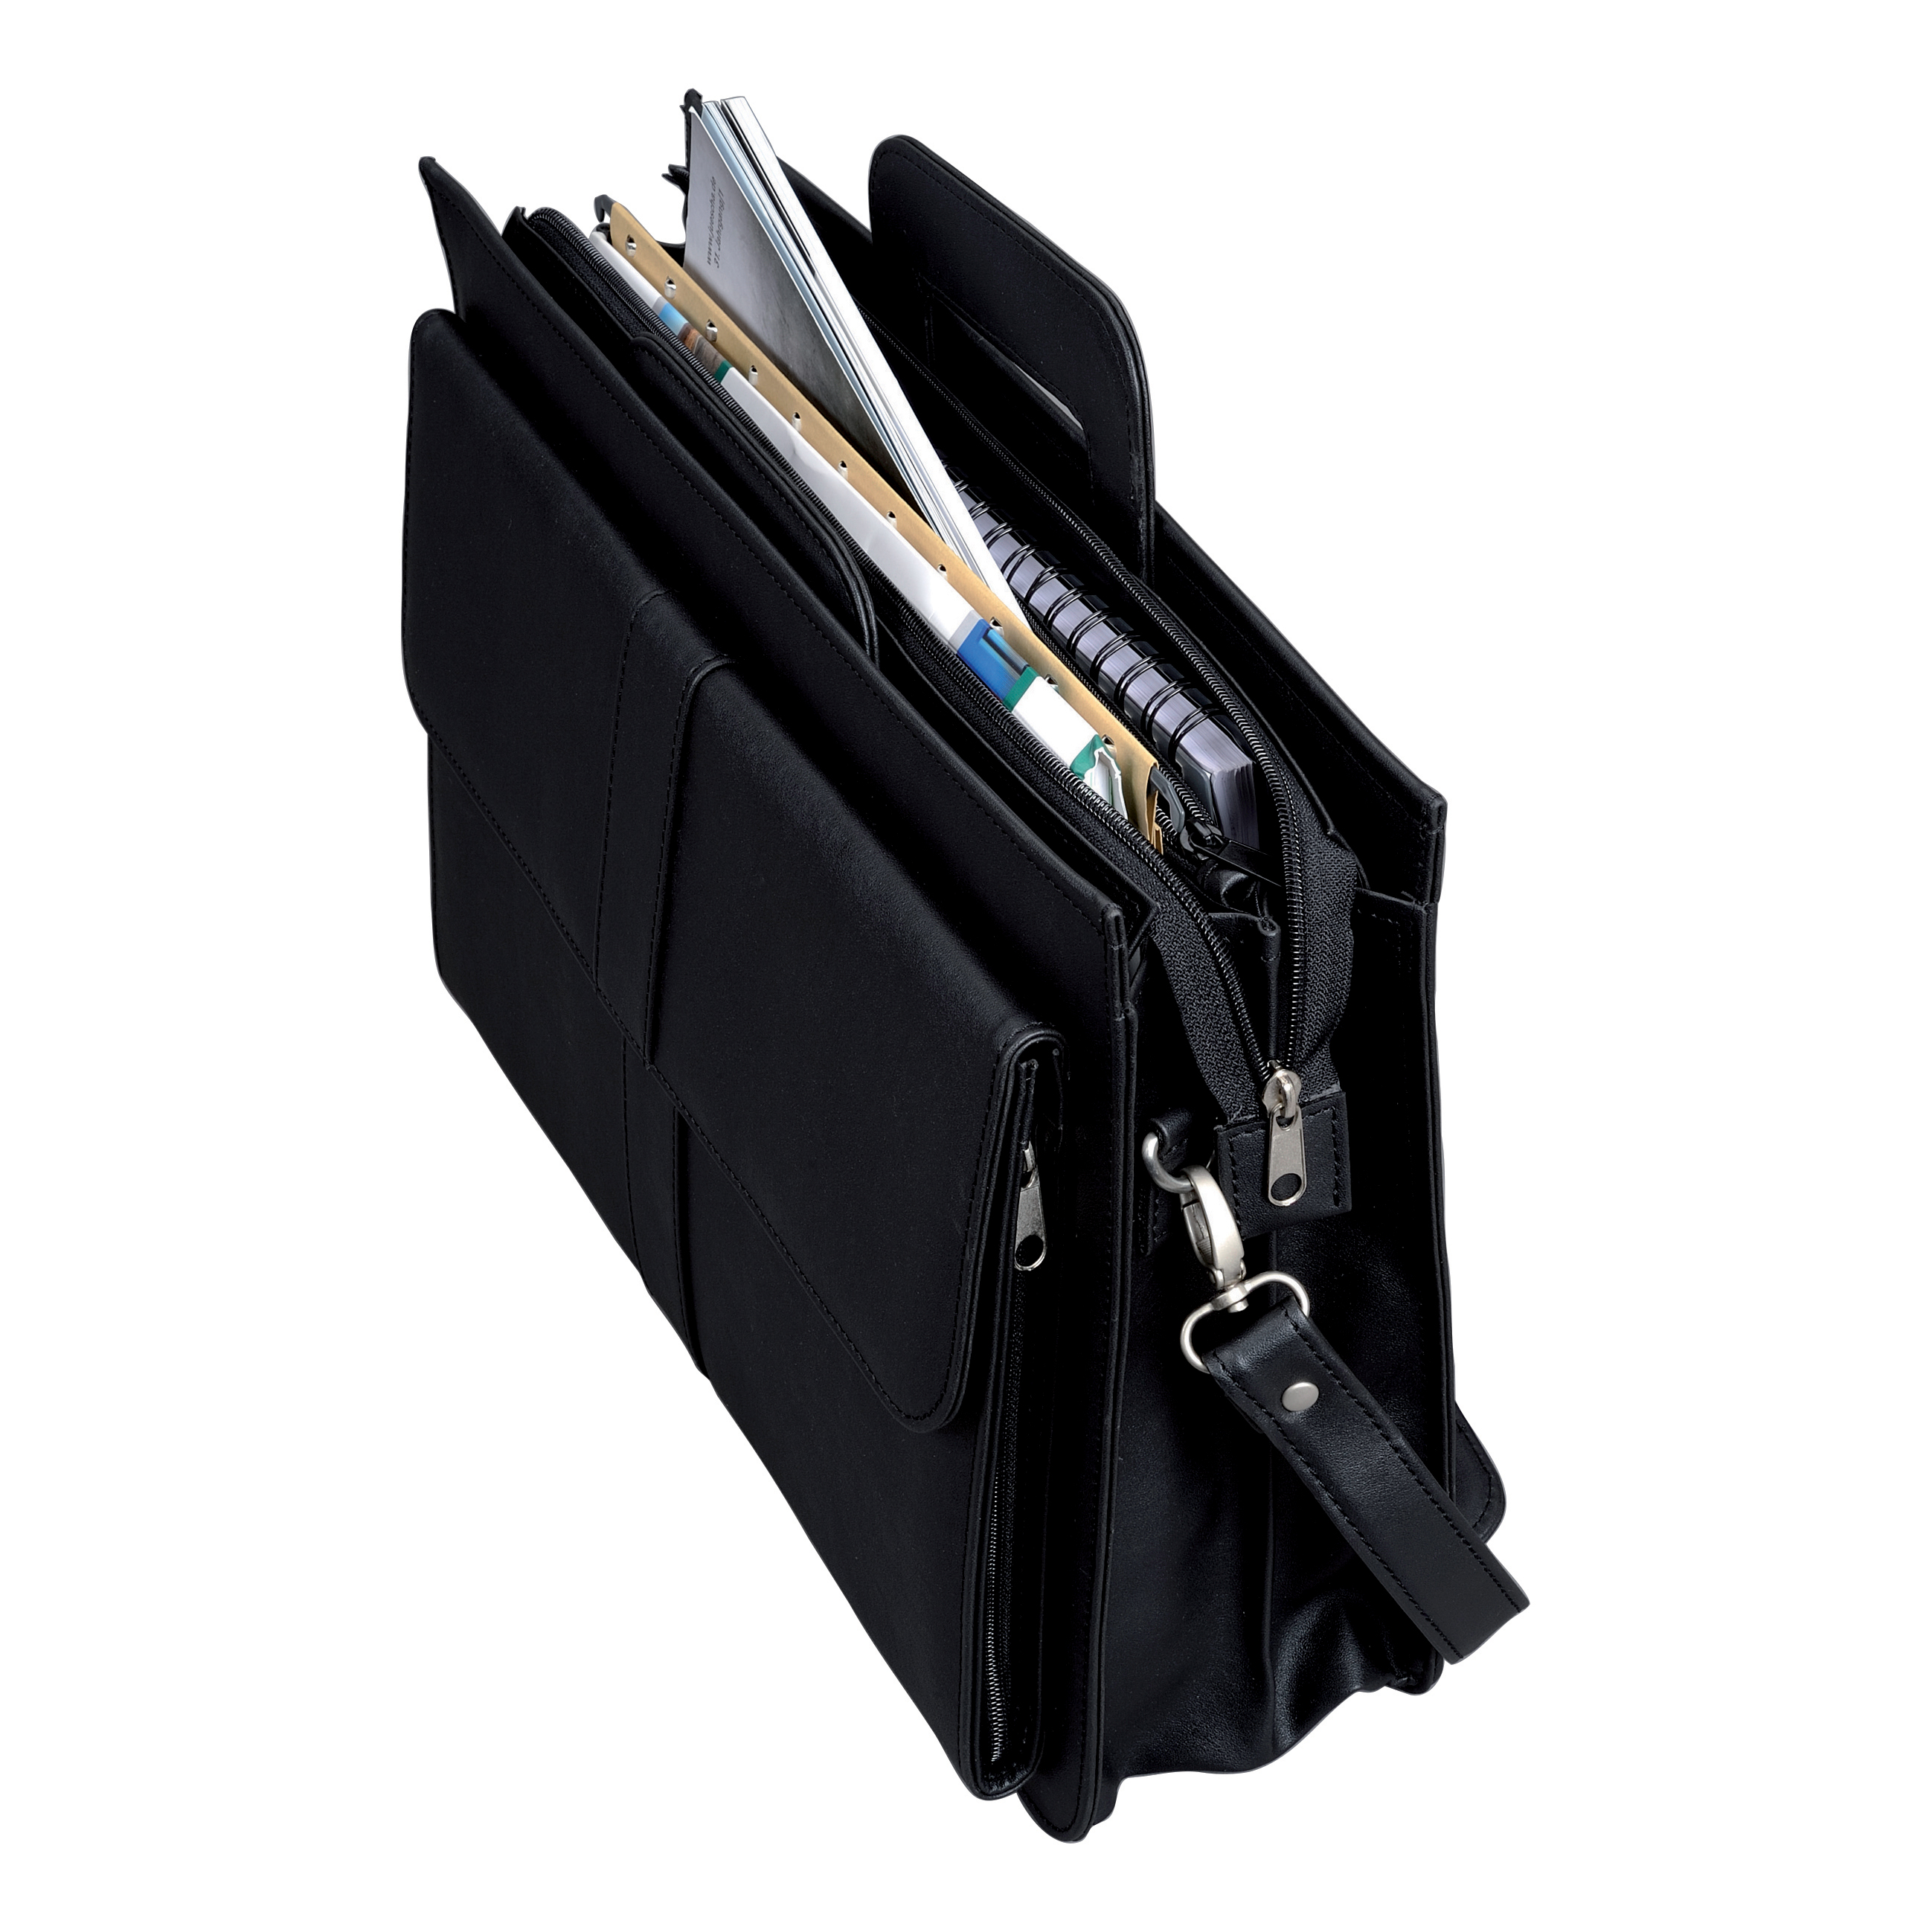 2d3689b0b5f Image for Alassio Document Case Multi-section Zipped with Shoulder Strap  Leather-look Black